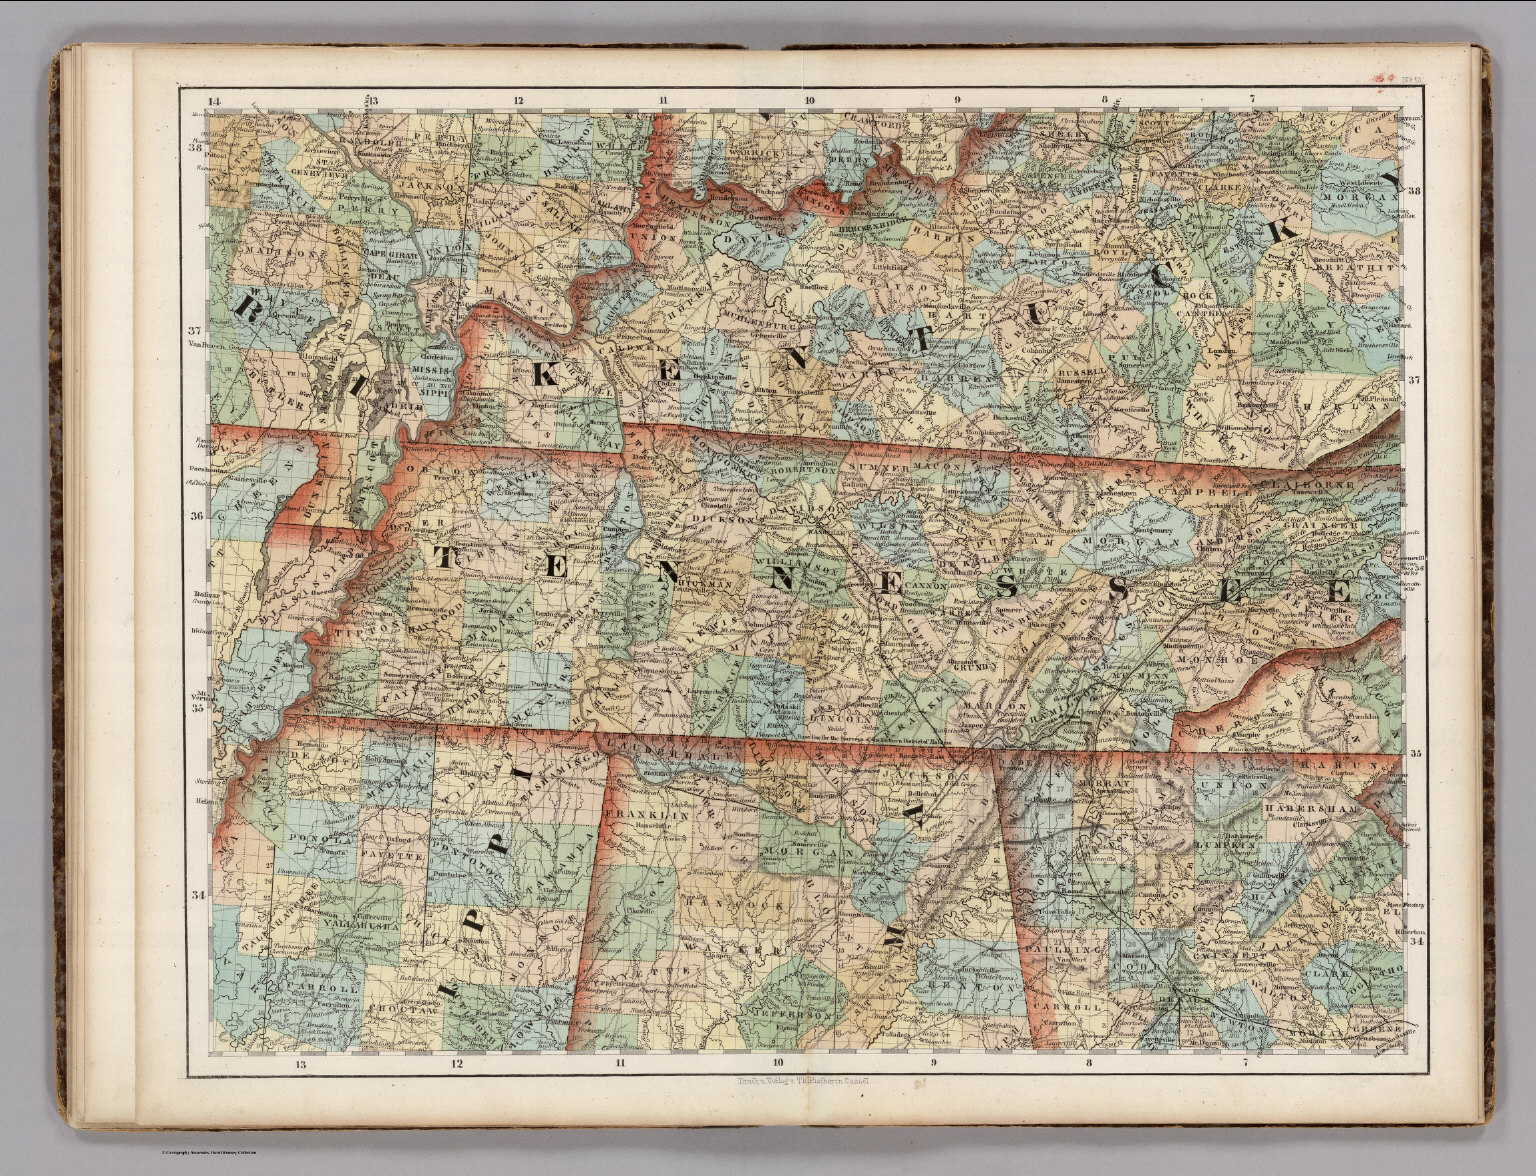 Map Of Alabama And Tennessee Kentucky, Tennessee, Mississippi, Alabama.   David Rumsey  Map Of Alabama And Tennessee